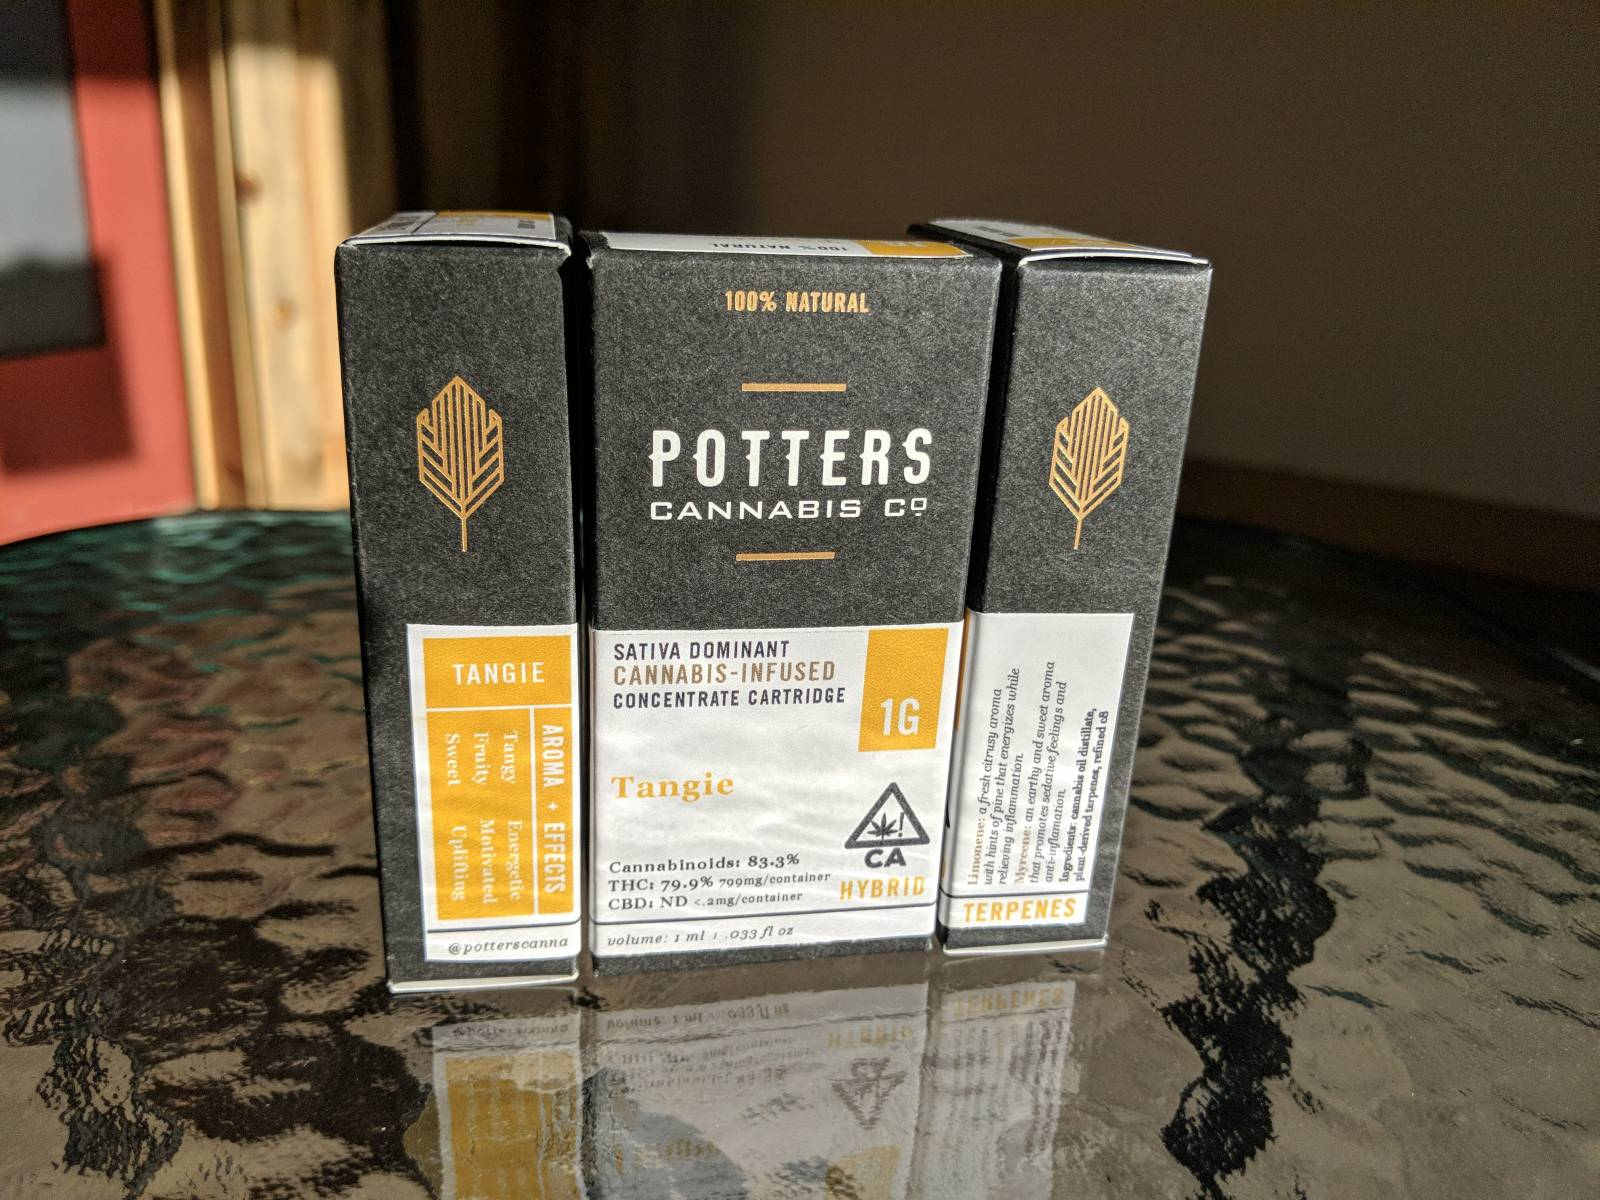 Potters cannabis co Tangie full gram cartridge